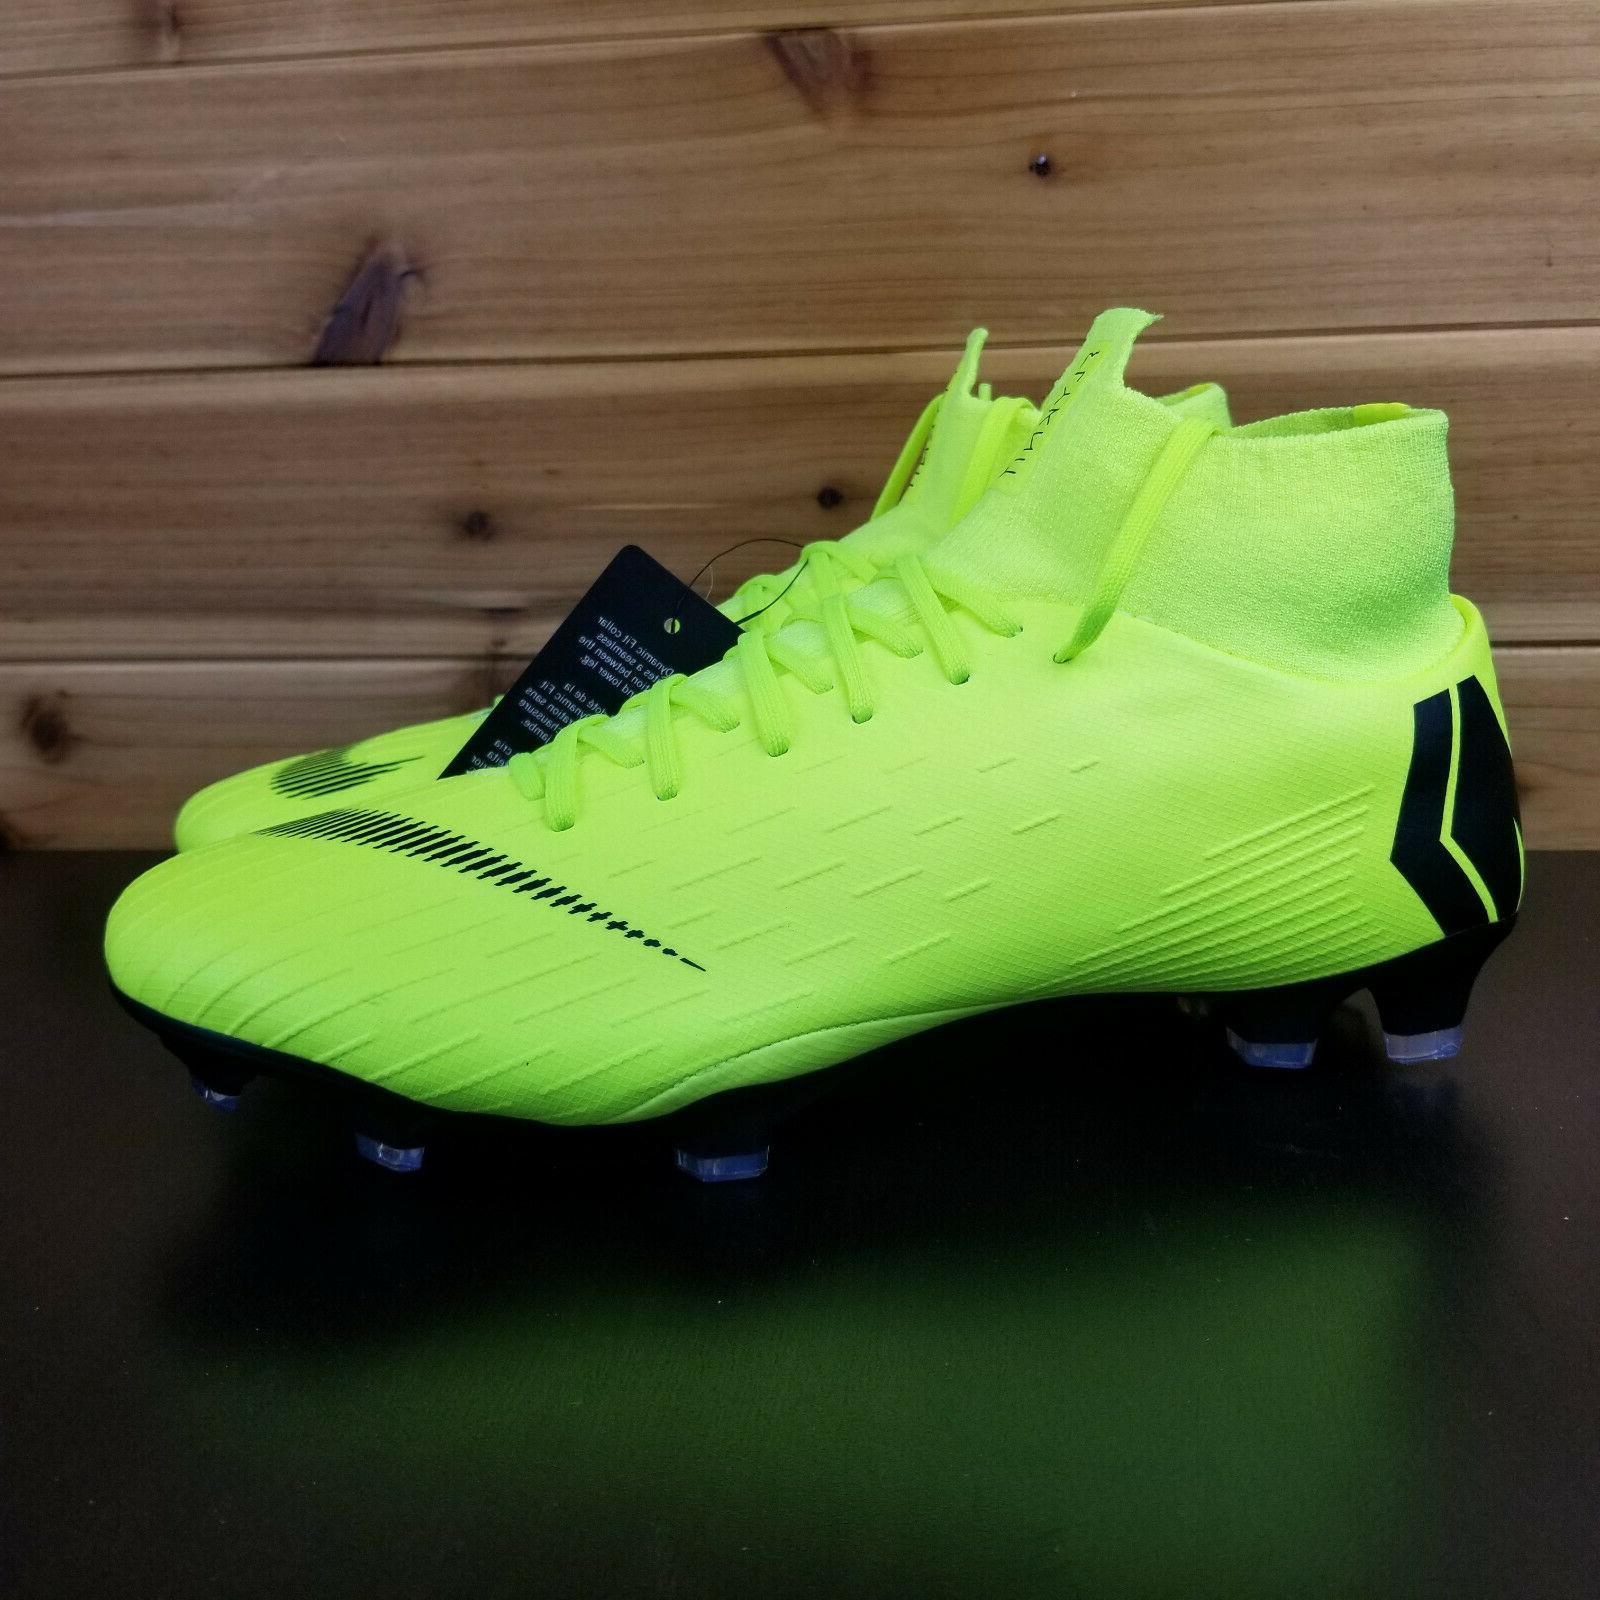 ad5ccddf83f Nike Mercurial Superfly 6 Pro FG MG Soccer Cleats